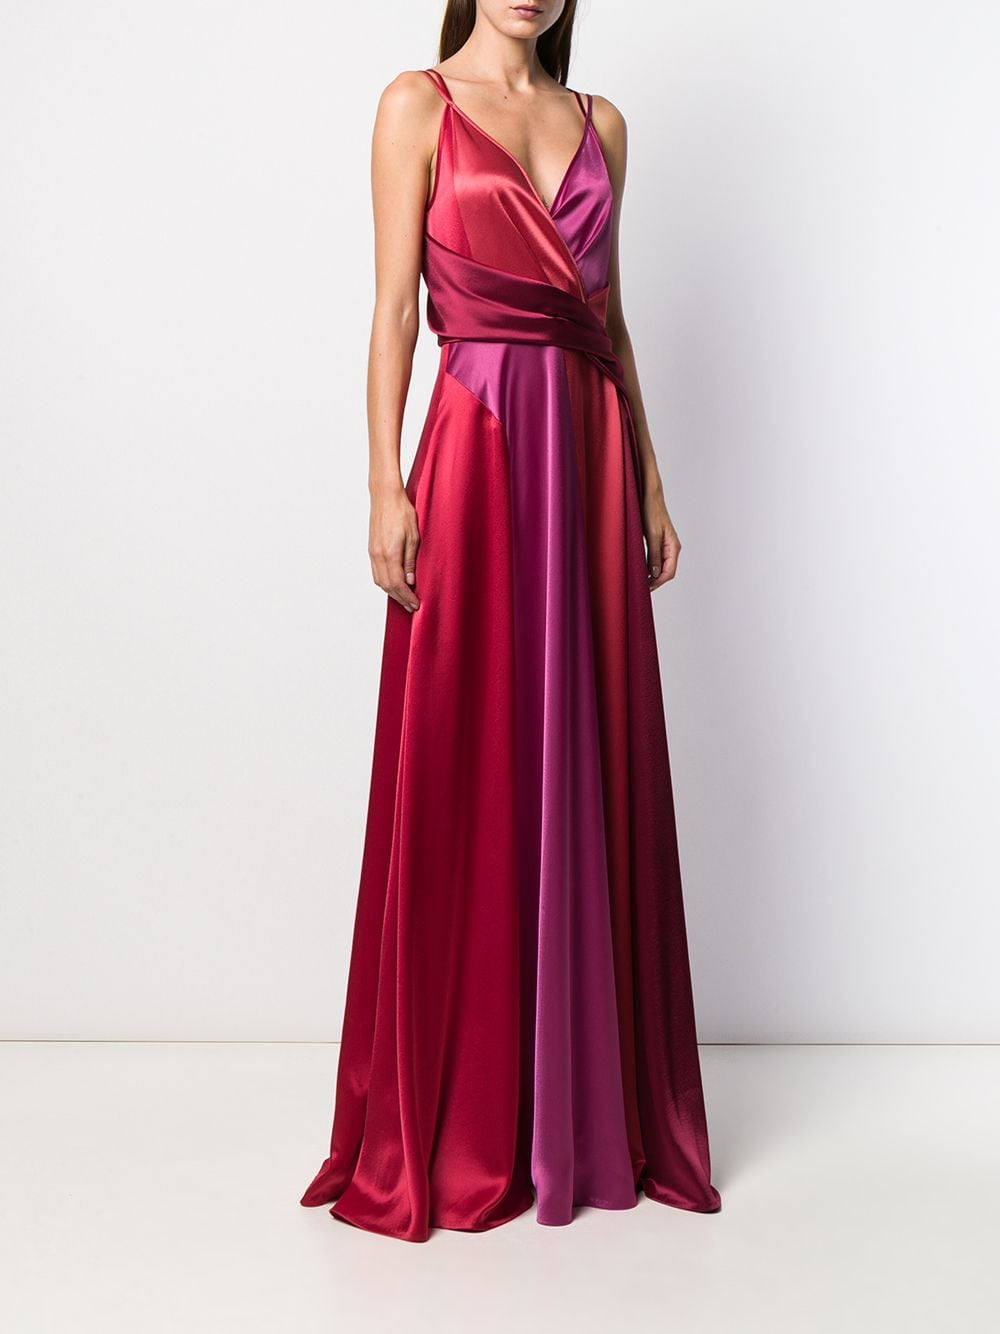 Red and pink Solberg gown featuring a v-neck TALBOT RUNHOF      SOLBERG5-WT23369